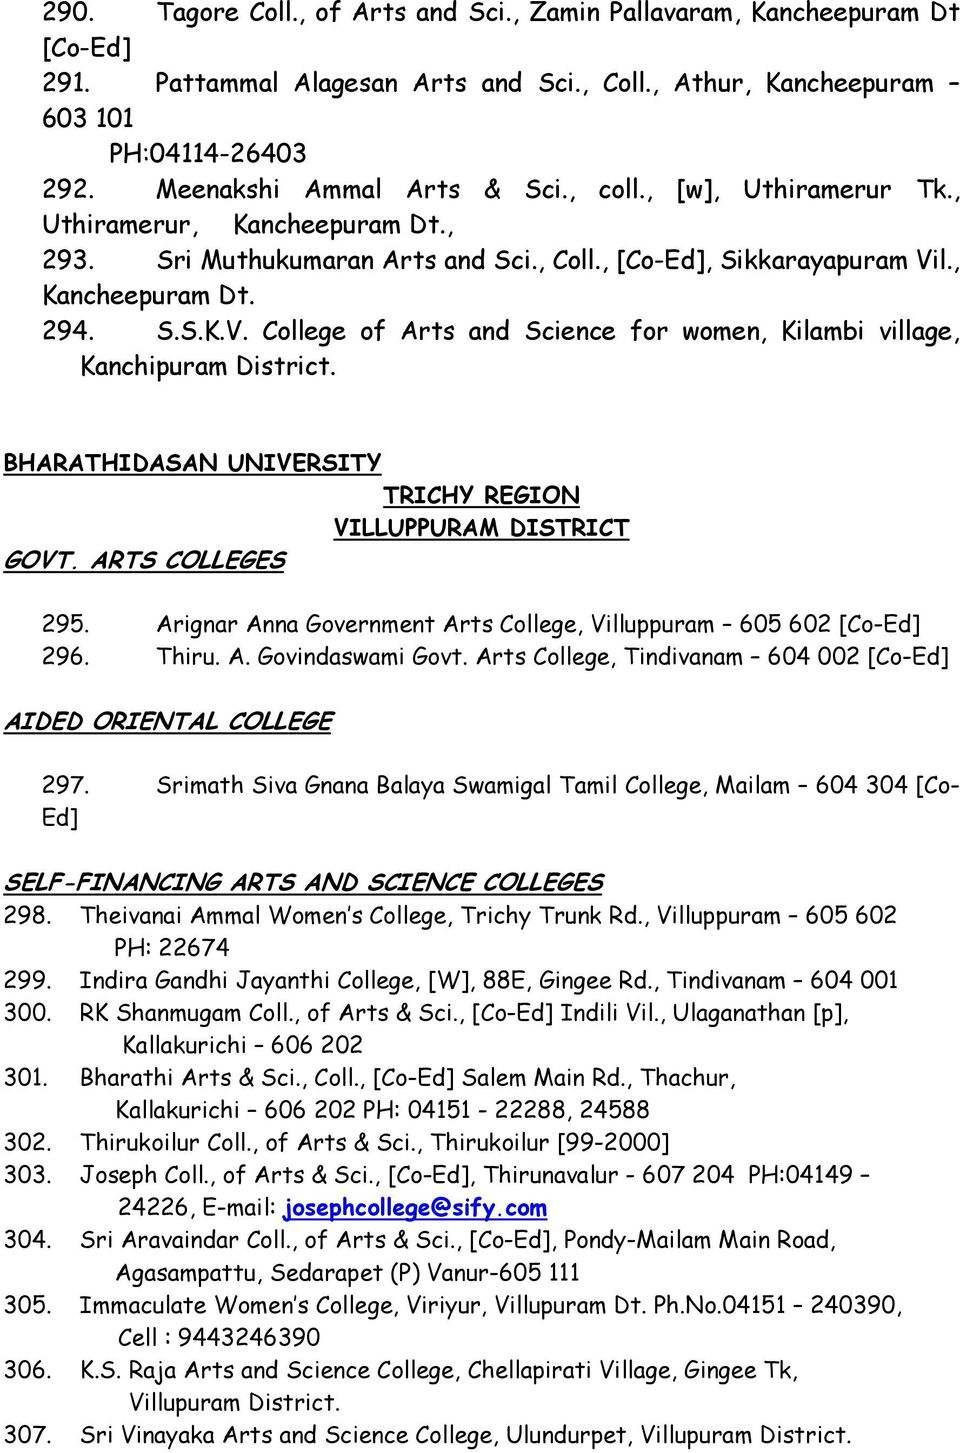 l., Kancheepuram Dt. 294. S.S.K.V. College of Arts and Science for women, Kilambi village, Kanchipuram District. BHARATHIDASAN UNIVERSITY TRICHY REGION VILLUPPURAM DISTRICT GOVT. ARTS COLLEGES 295.